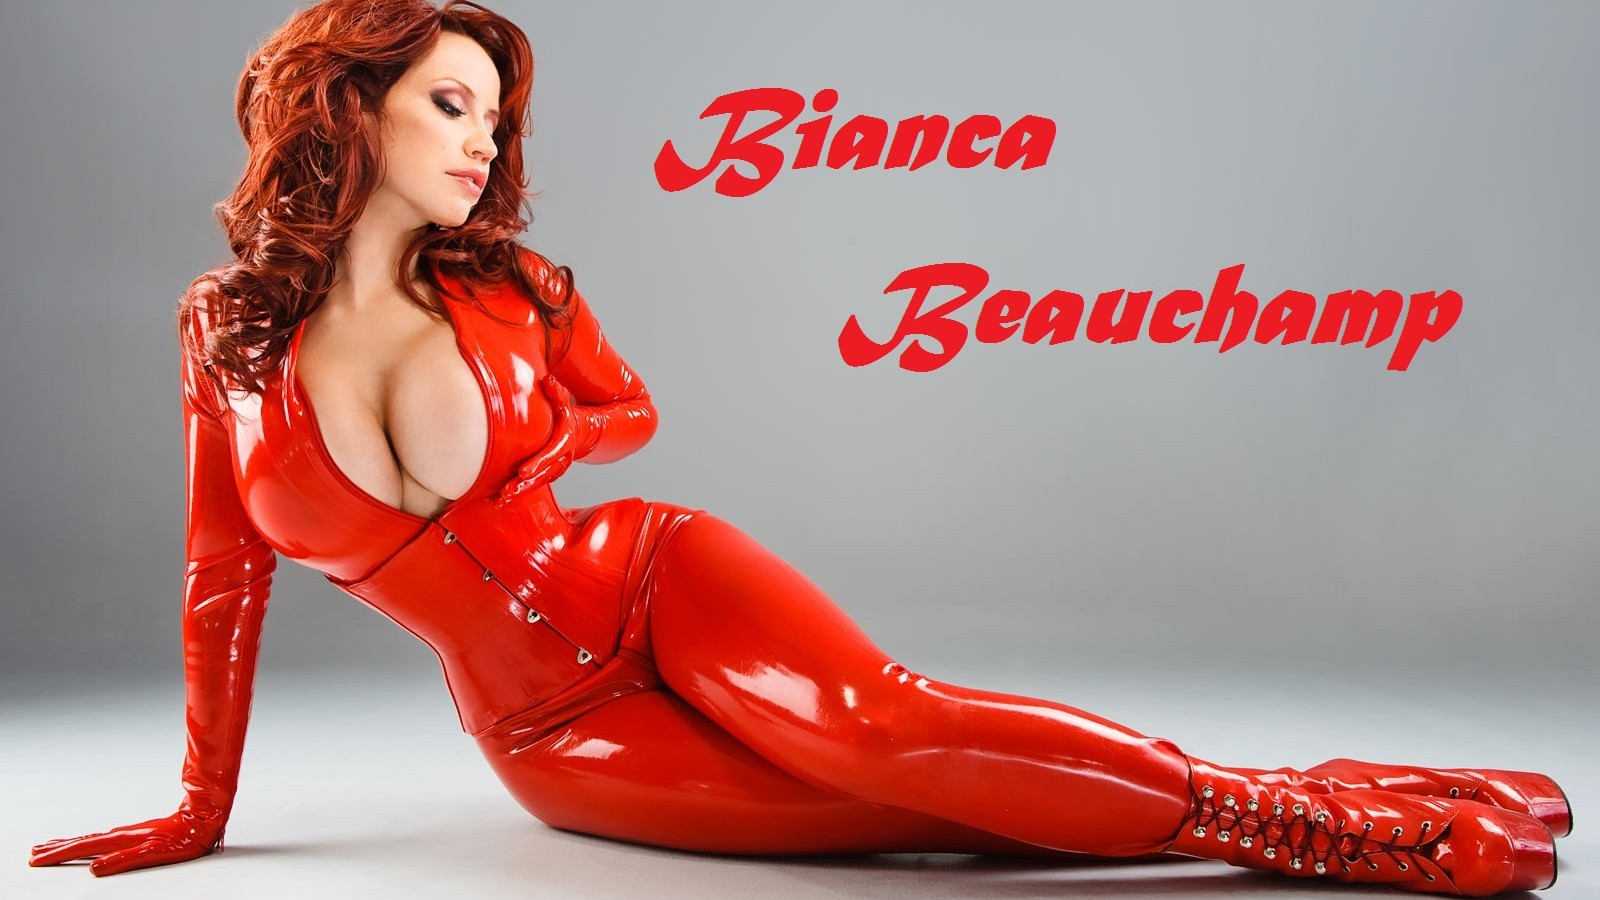 free download hq bianca beauchamp wallpaper num 6 1600